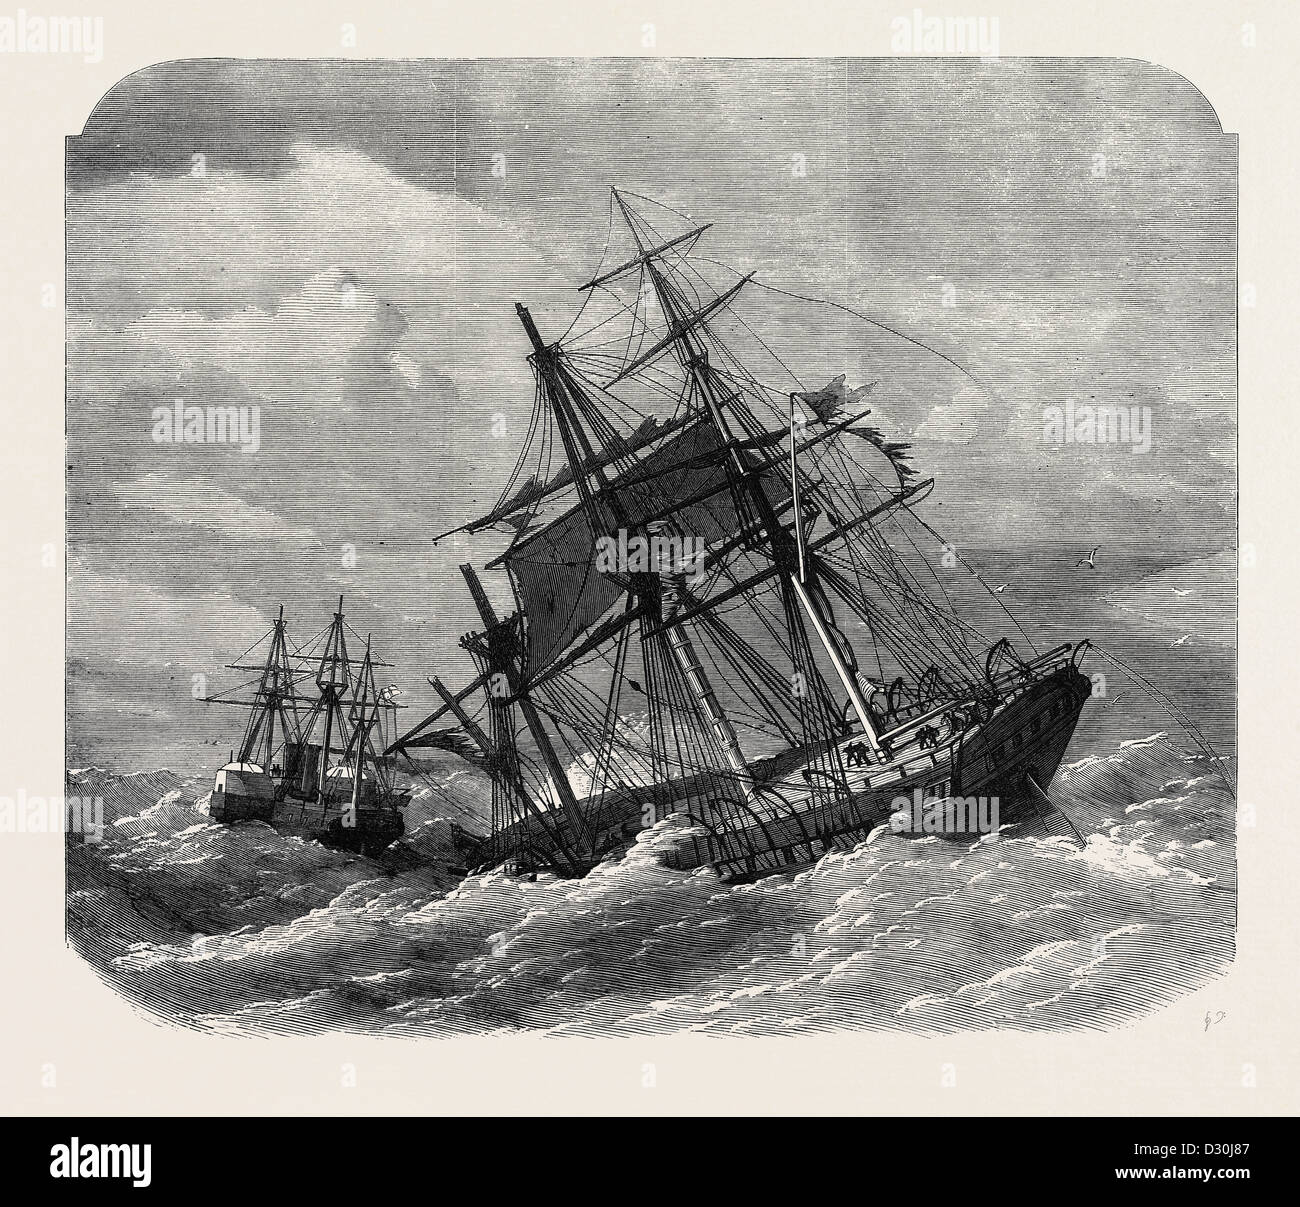 THE LATE COLLISION OFF THE LIZARD: H.M.S. TERRIBLE TOWING THE CALCUTTA INTO PLYMOUTH 1869 - Stock Image